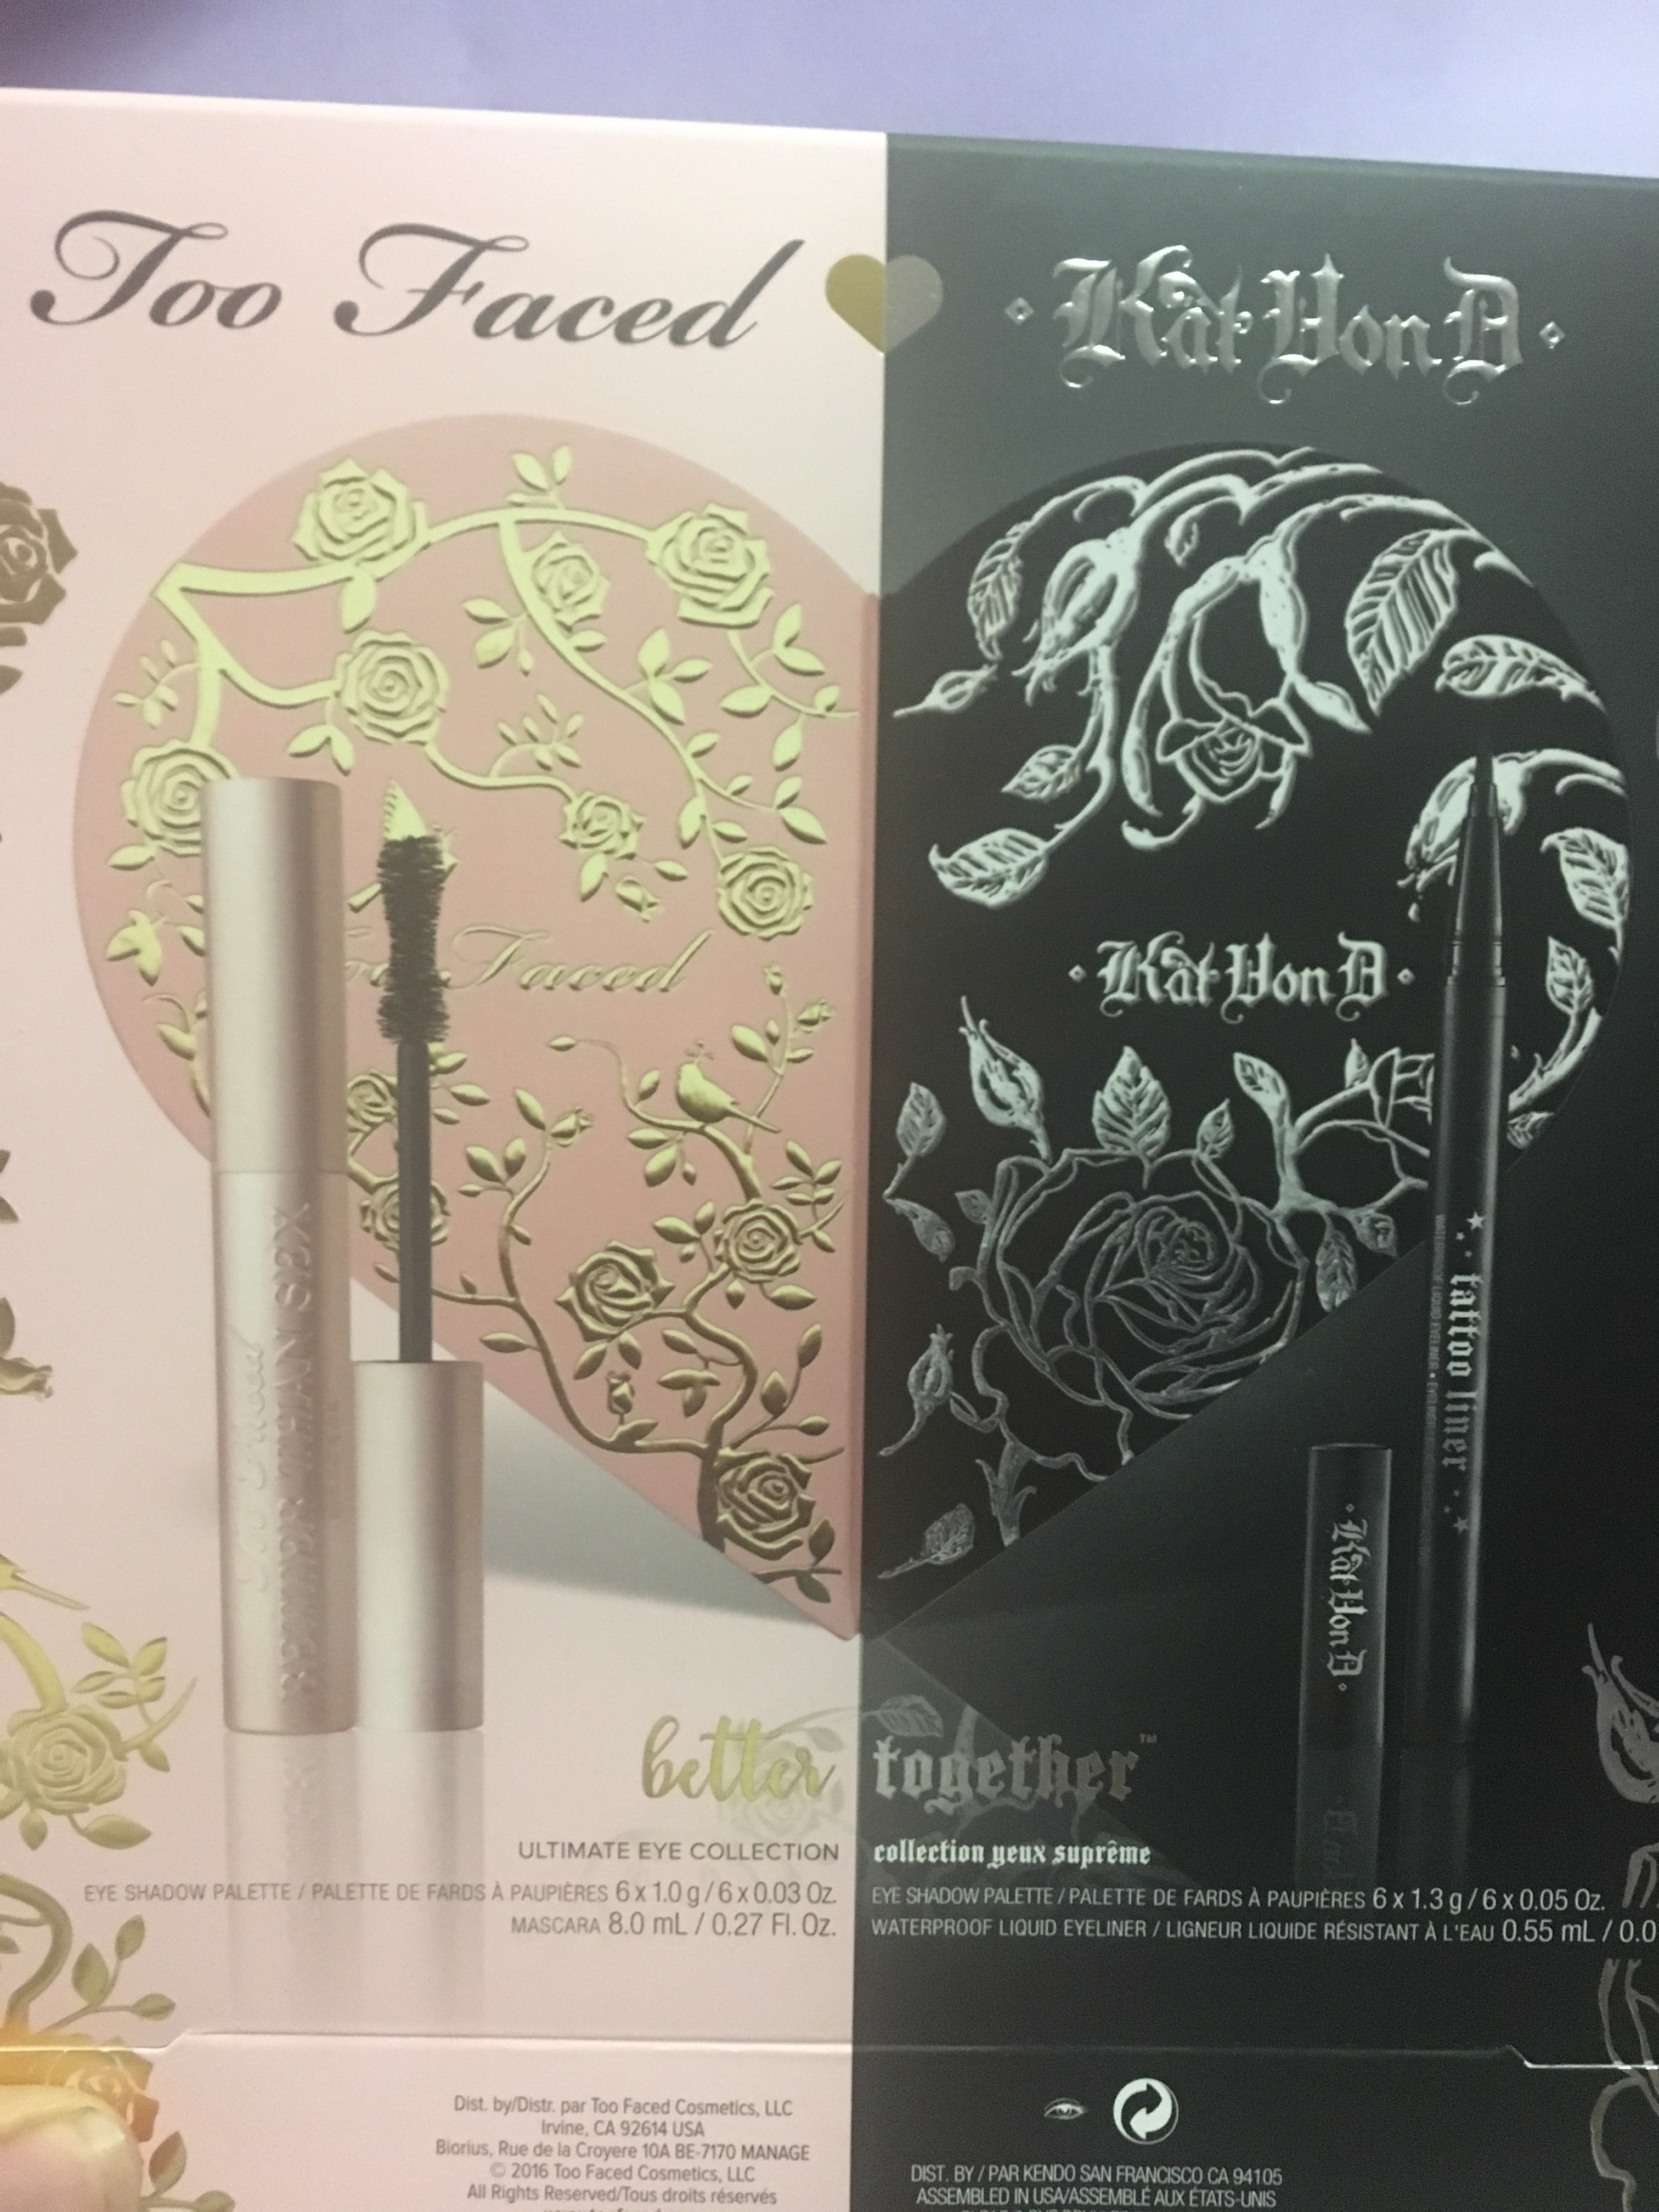 Too Faced X Kat Von D Better Together Not Your Average